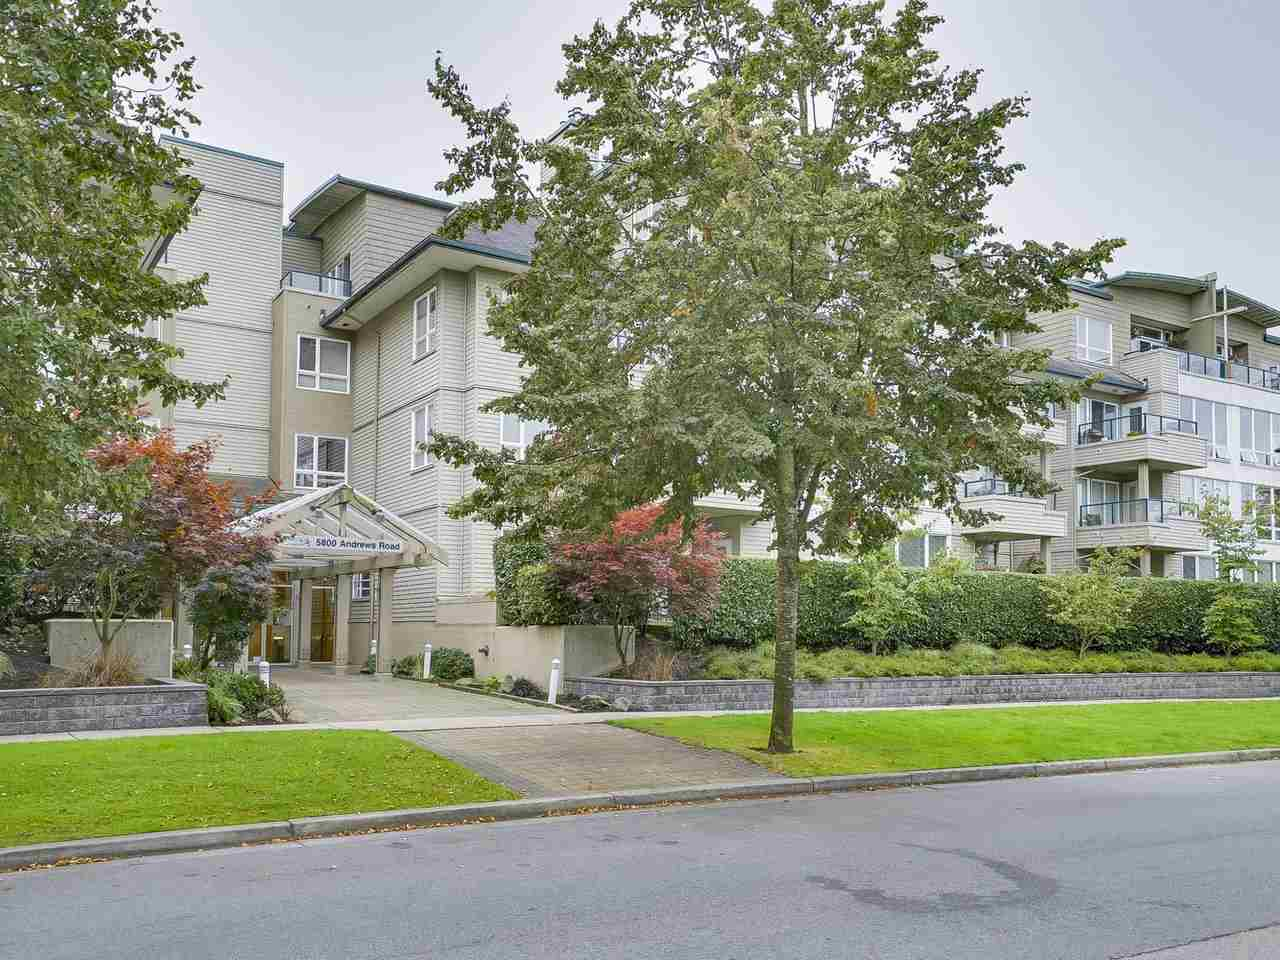 "Main Photo: 108 5800 ANDREWS Road in Richmond: Steveston South Condo for sale in ""VILLAS AT SOUTHCOVE"" : MLS® # R2202832"